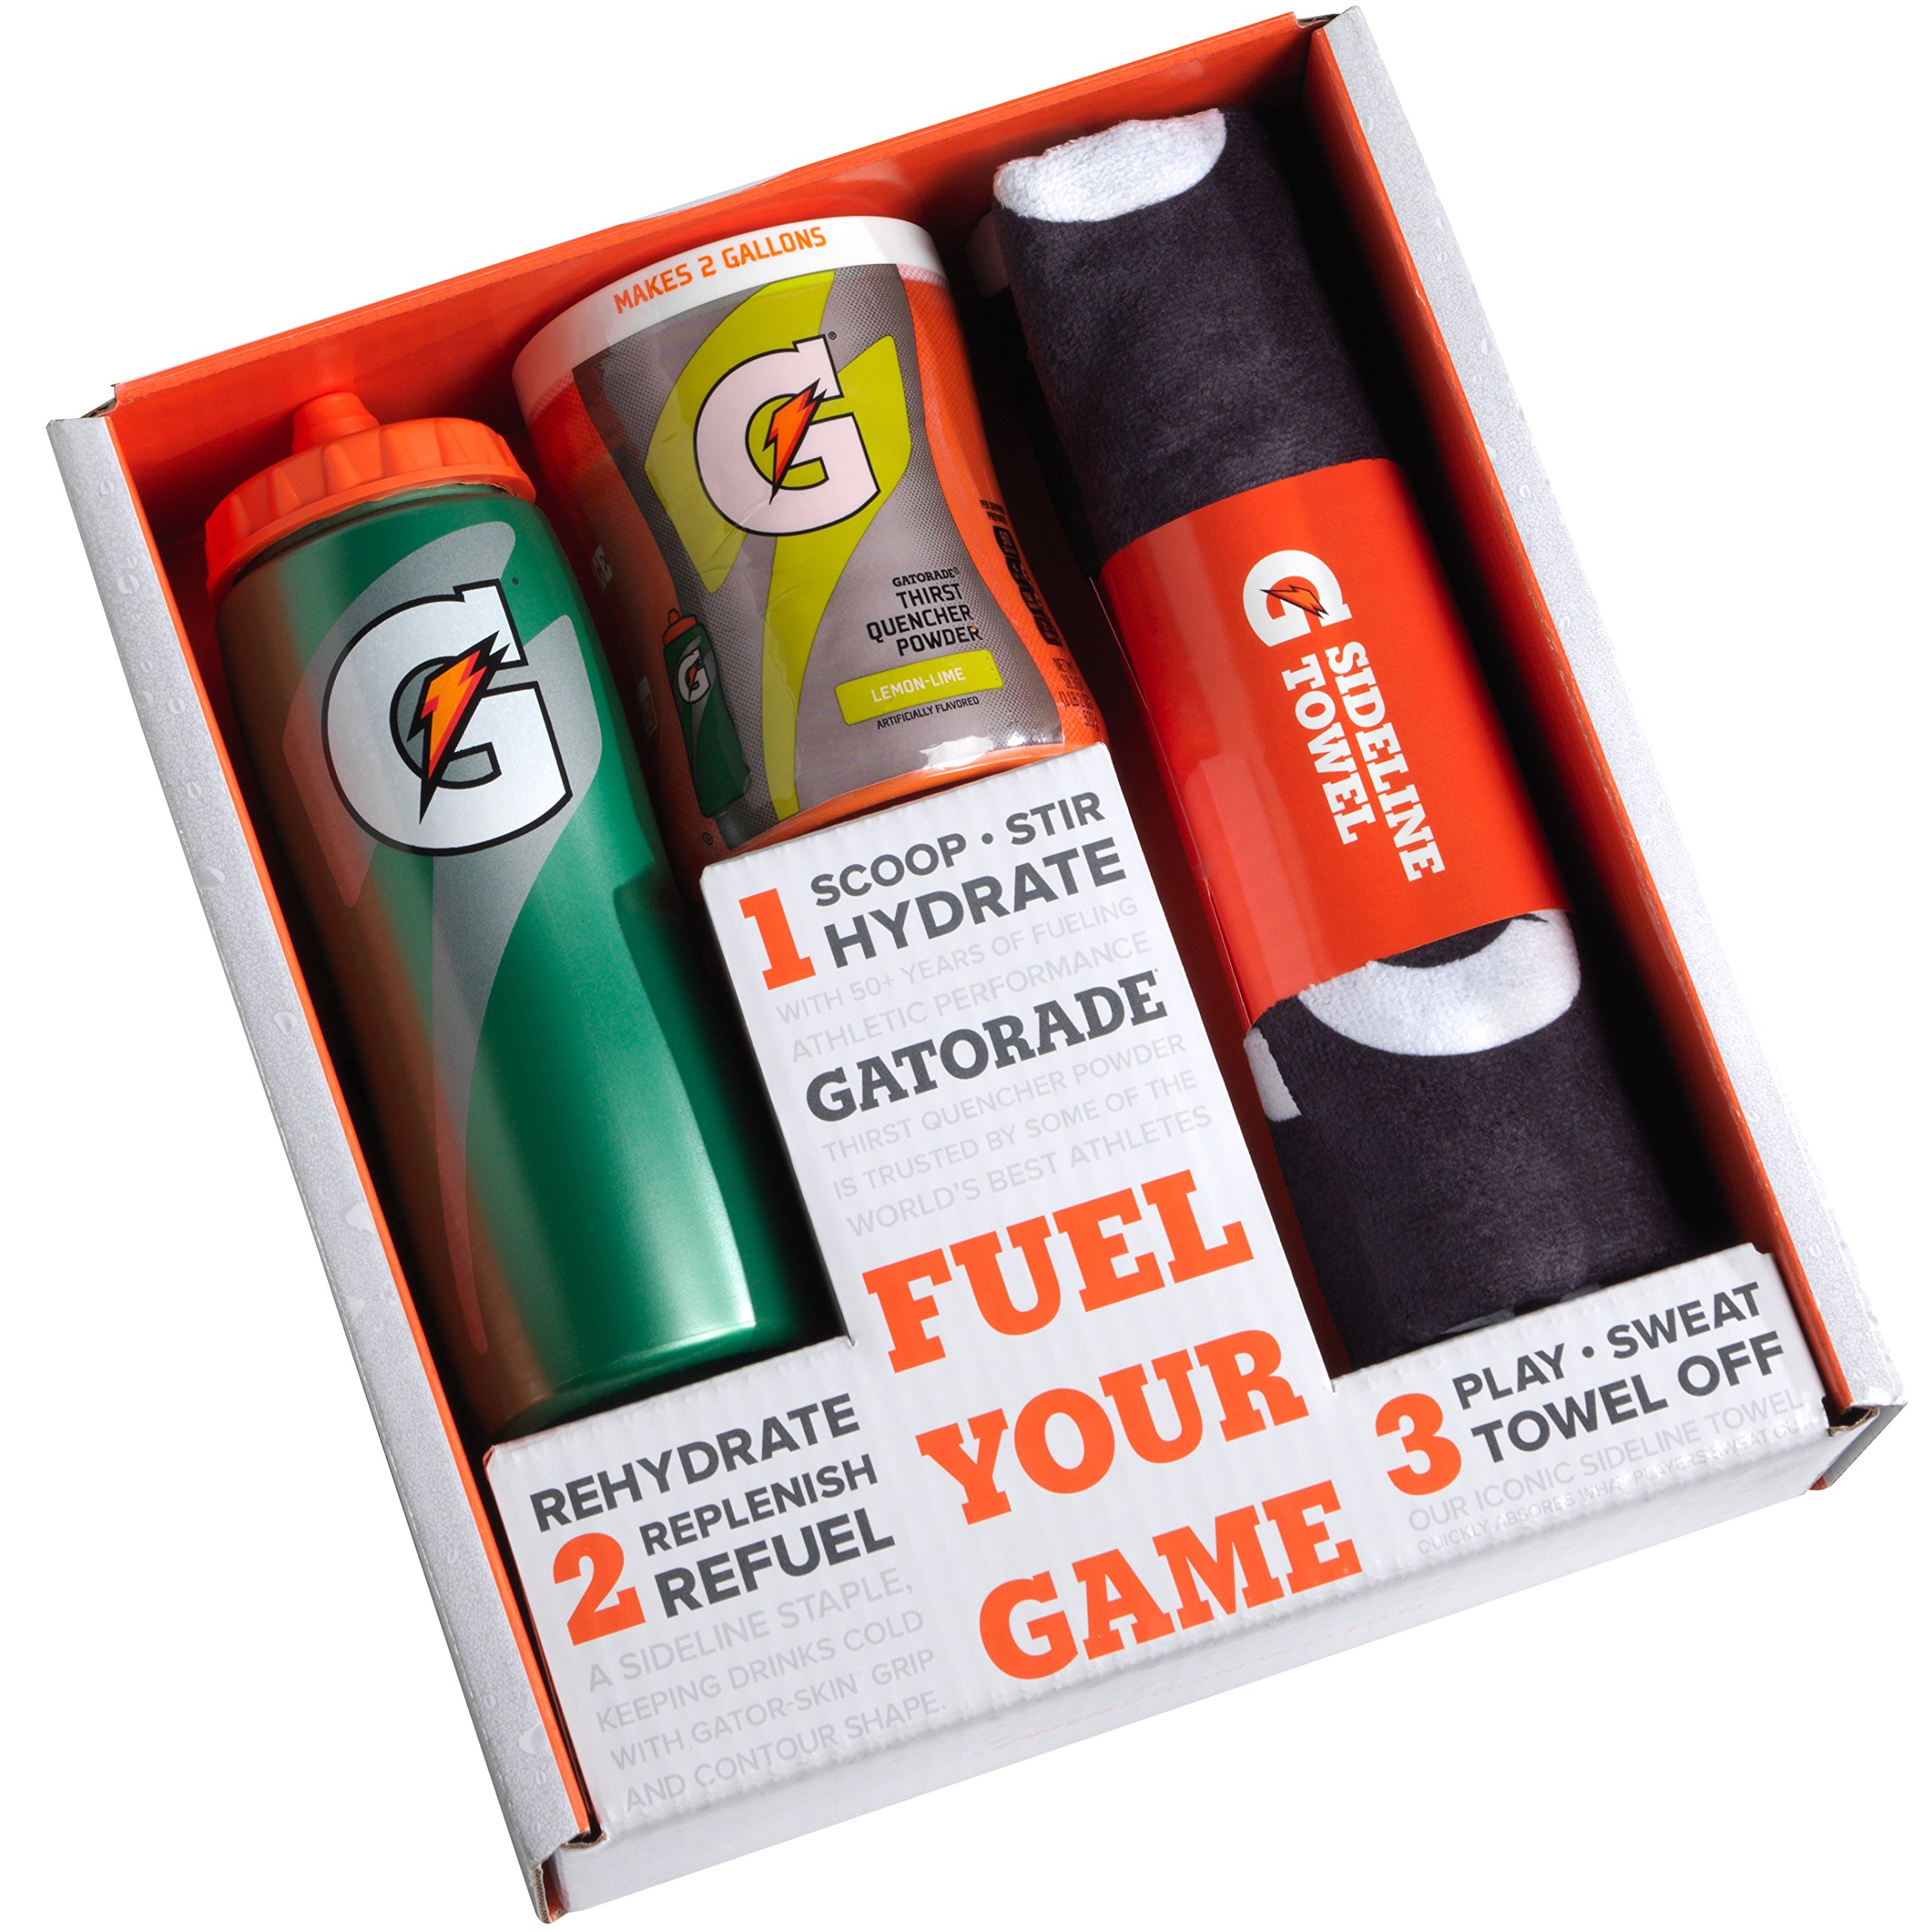 Gatorade Gift Set with Squeeze Bottle, Sport Towel, and Thirst Quencher Powder